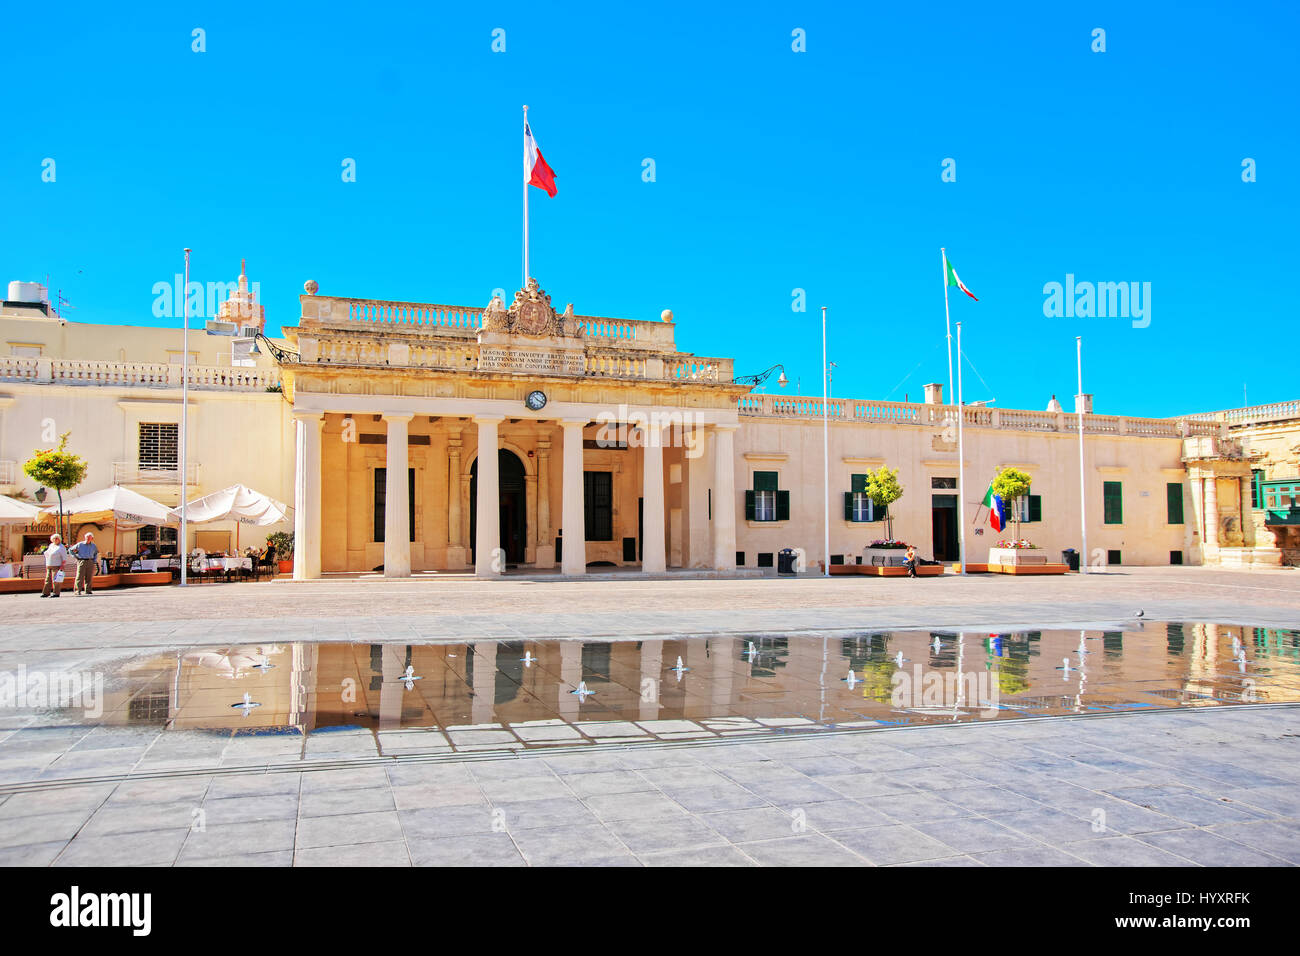 Valletta, Malta - April 1, 2014: People at Main Guard house at St George Square in Valletta old town, Malta - Stock Image